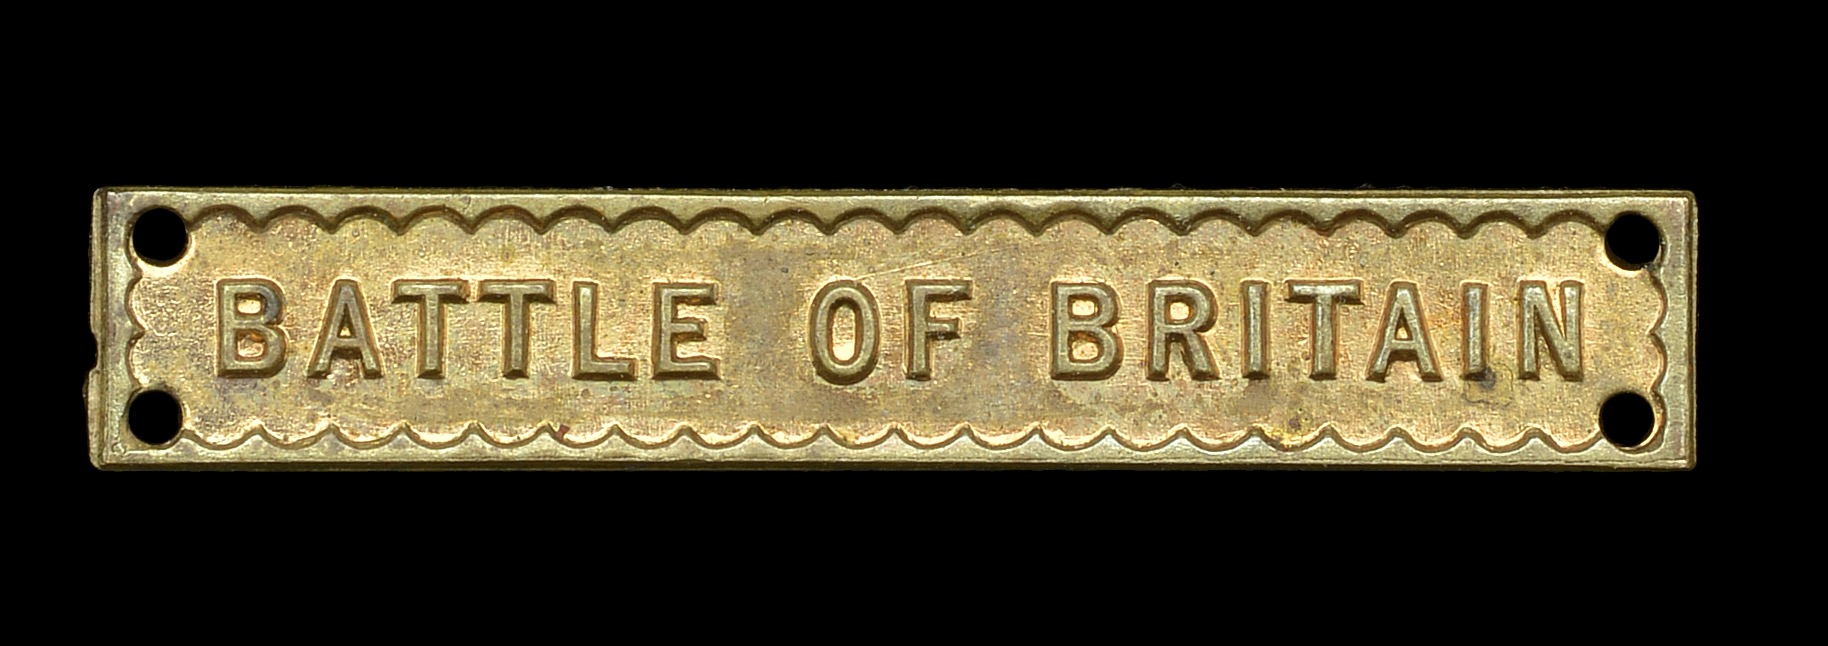 The Battle of Britain clasp